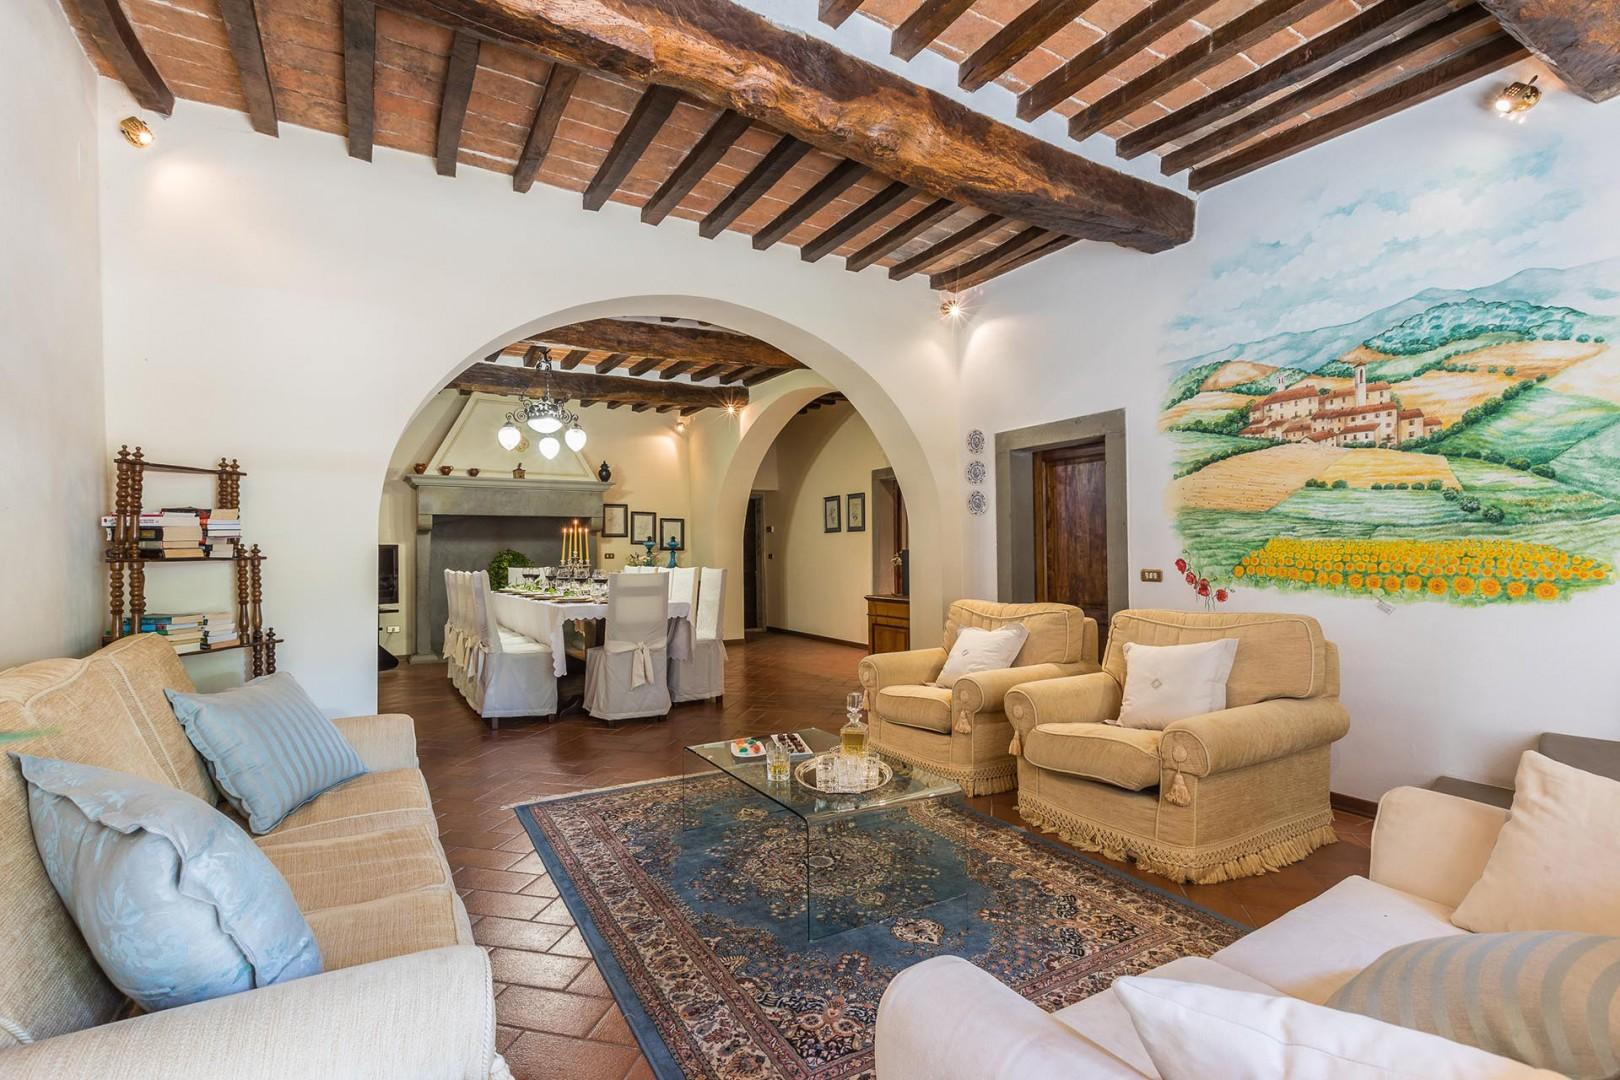 Comfortably furnished living room with beamed ceilings and terra cotta tile floors.